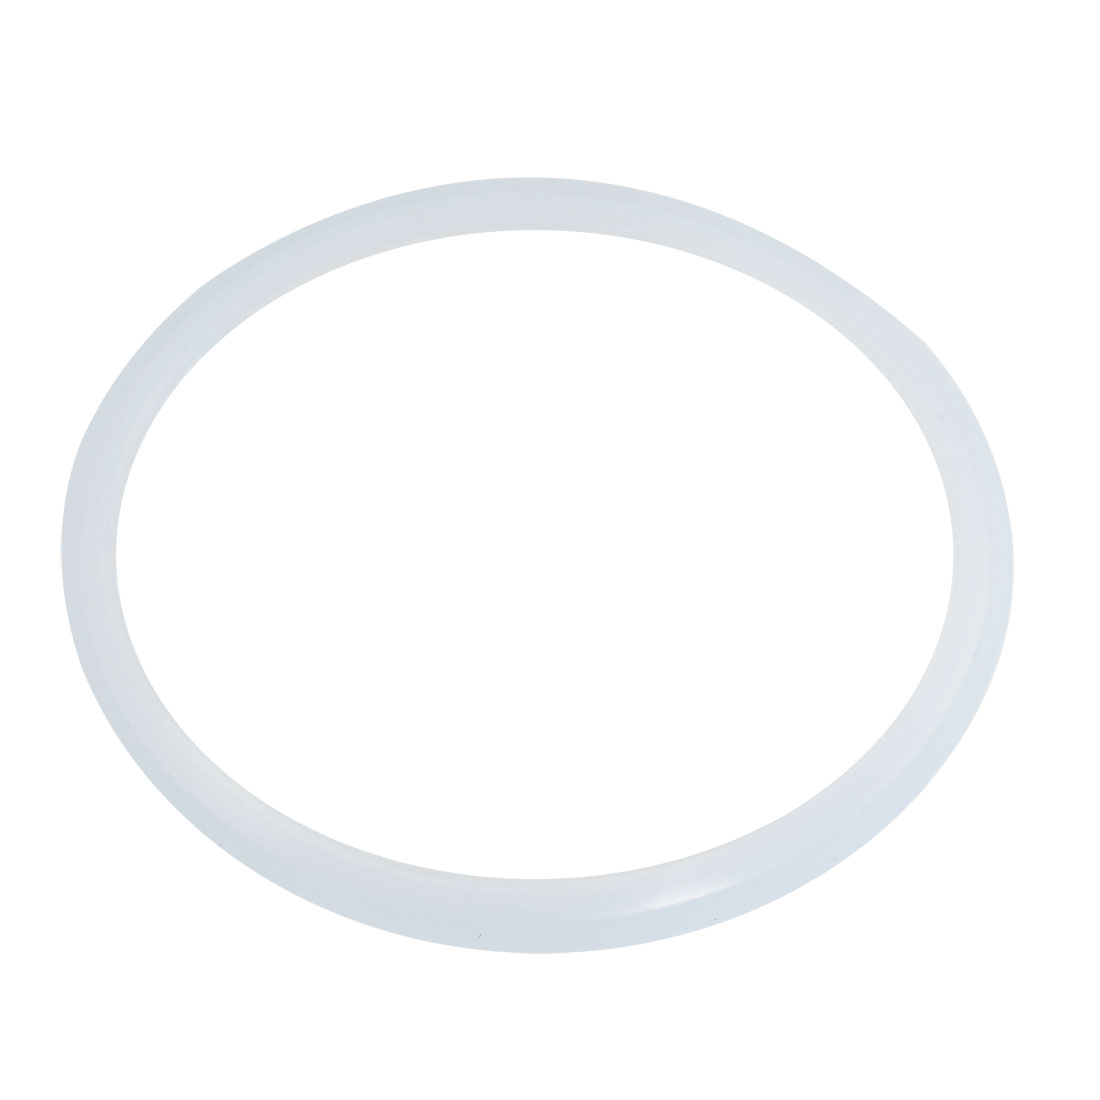 Kitchen Rubber Pressure Cooker Seal Sealing Ring Light Blue 18cmx20cm